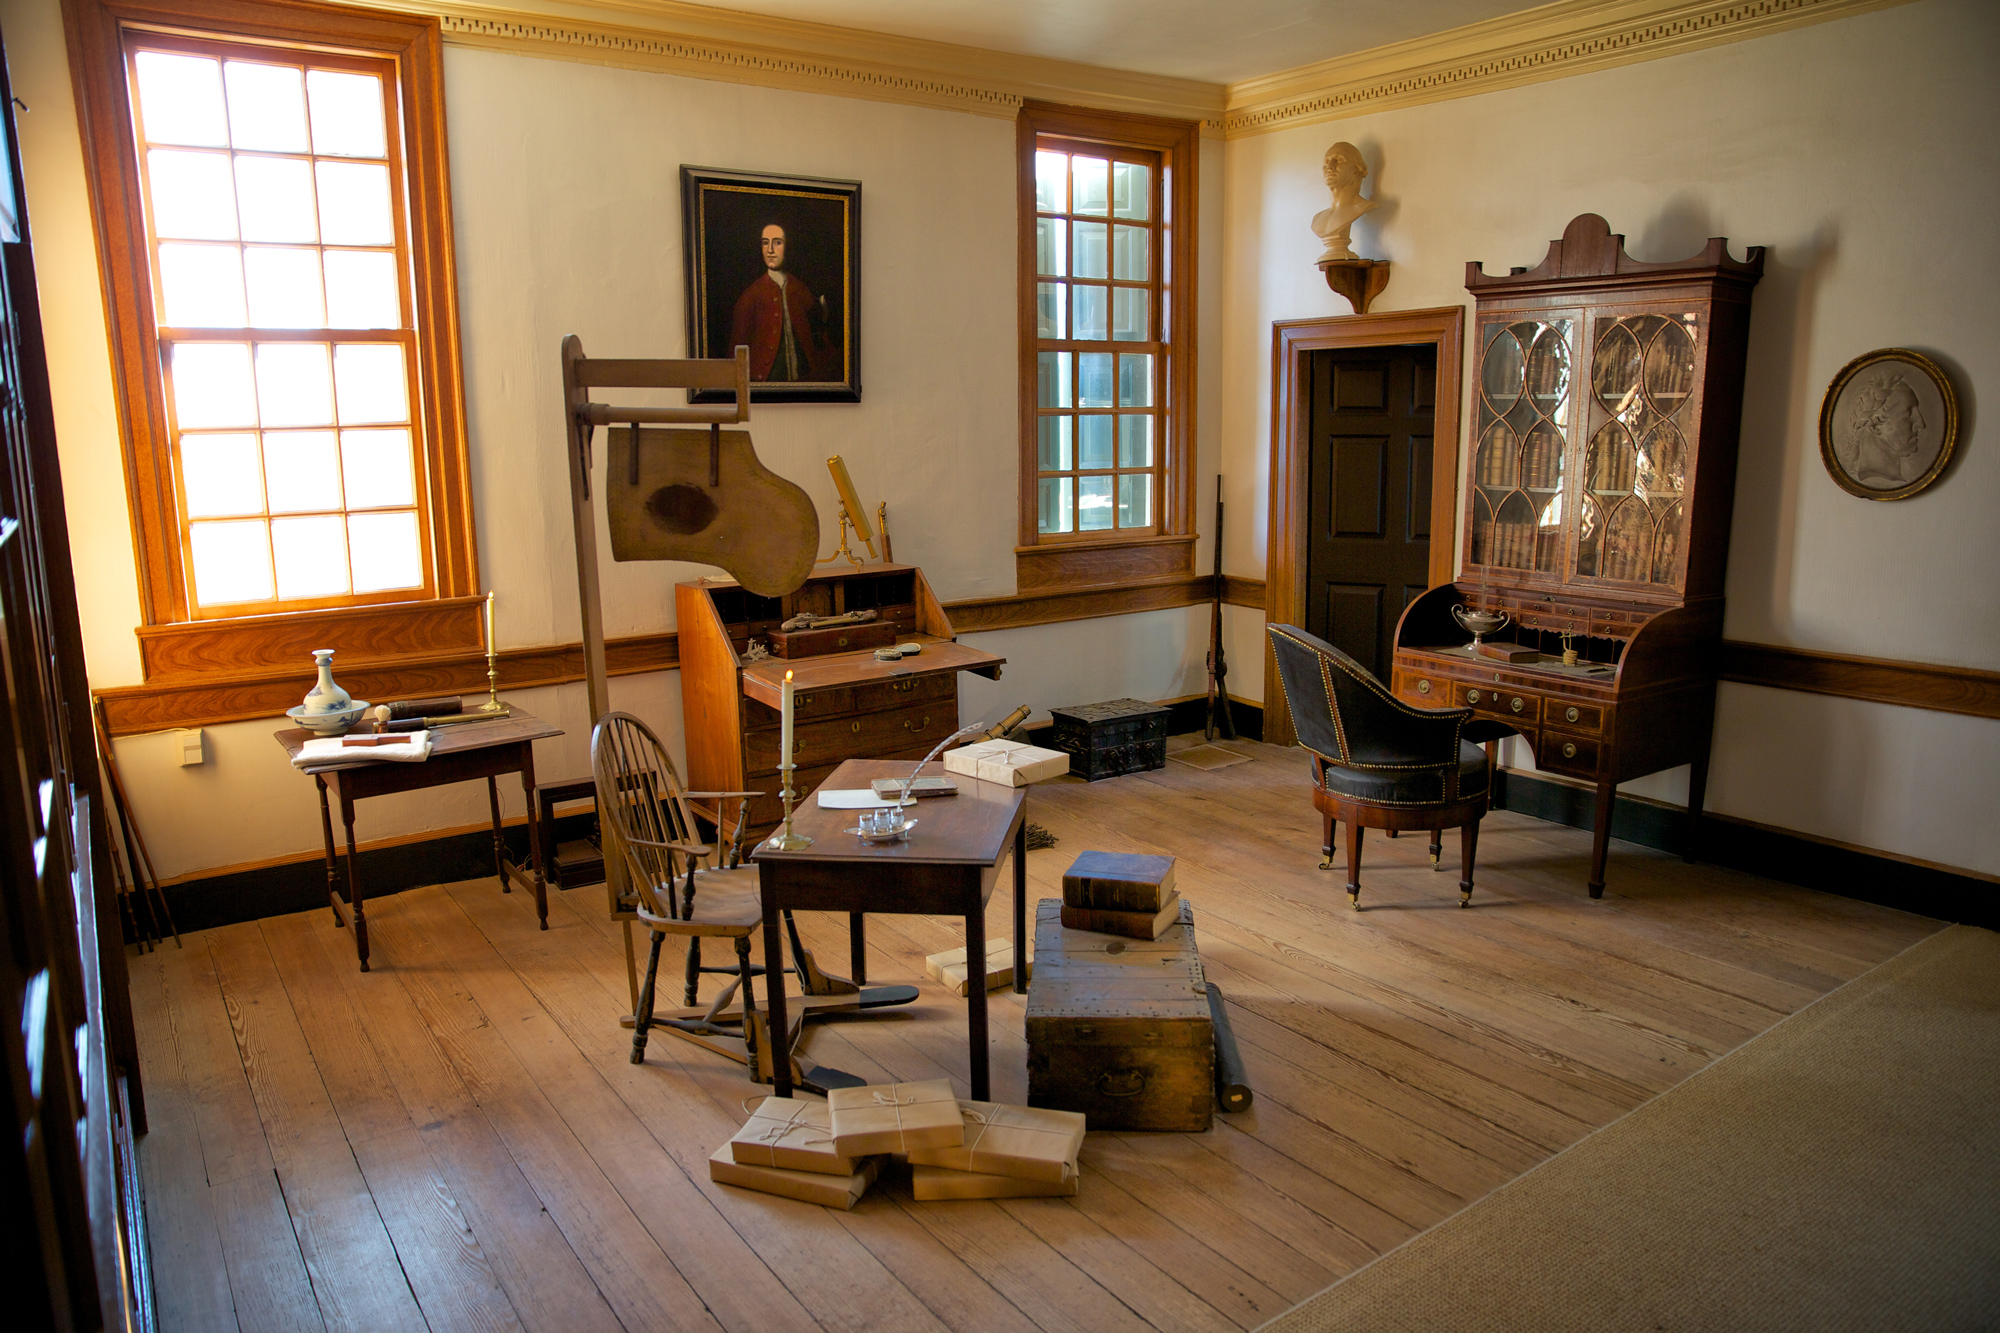 Washington's Study at Mount Vernon